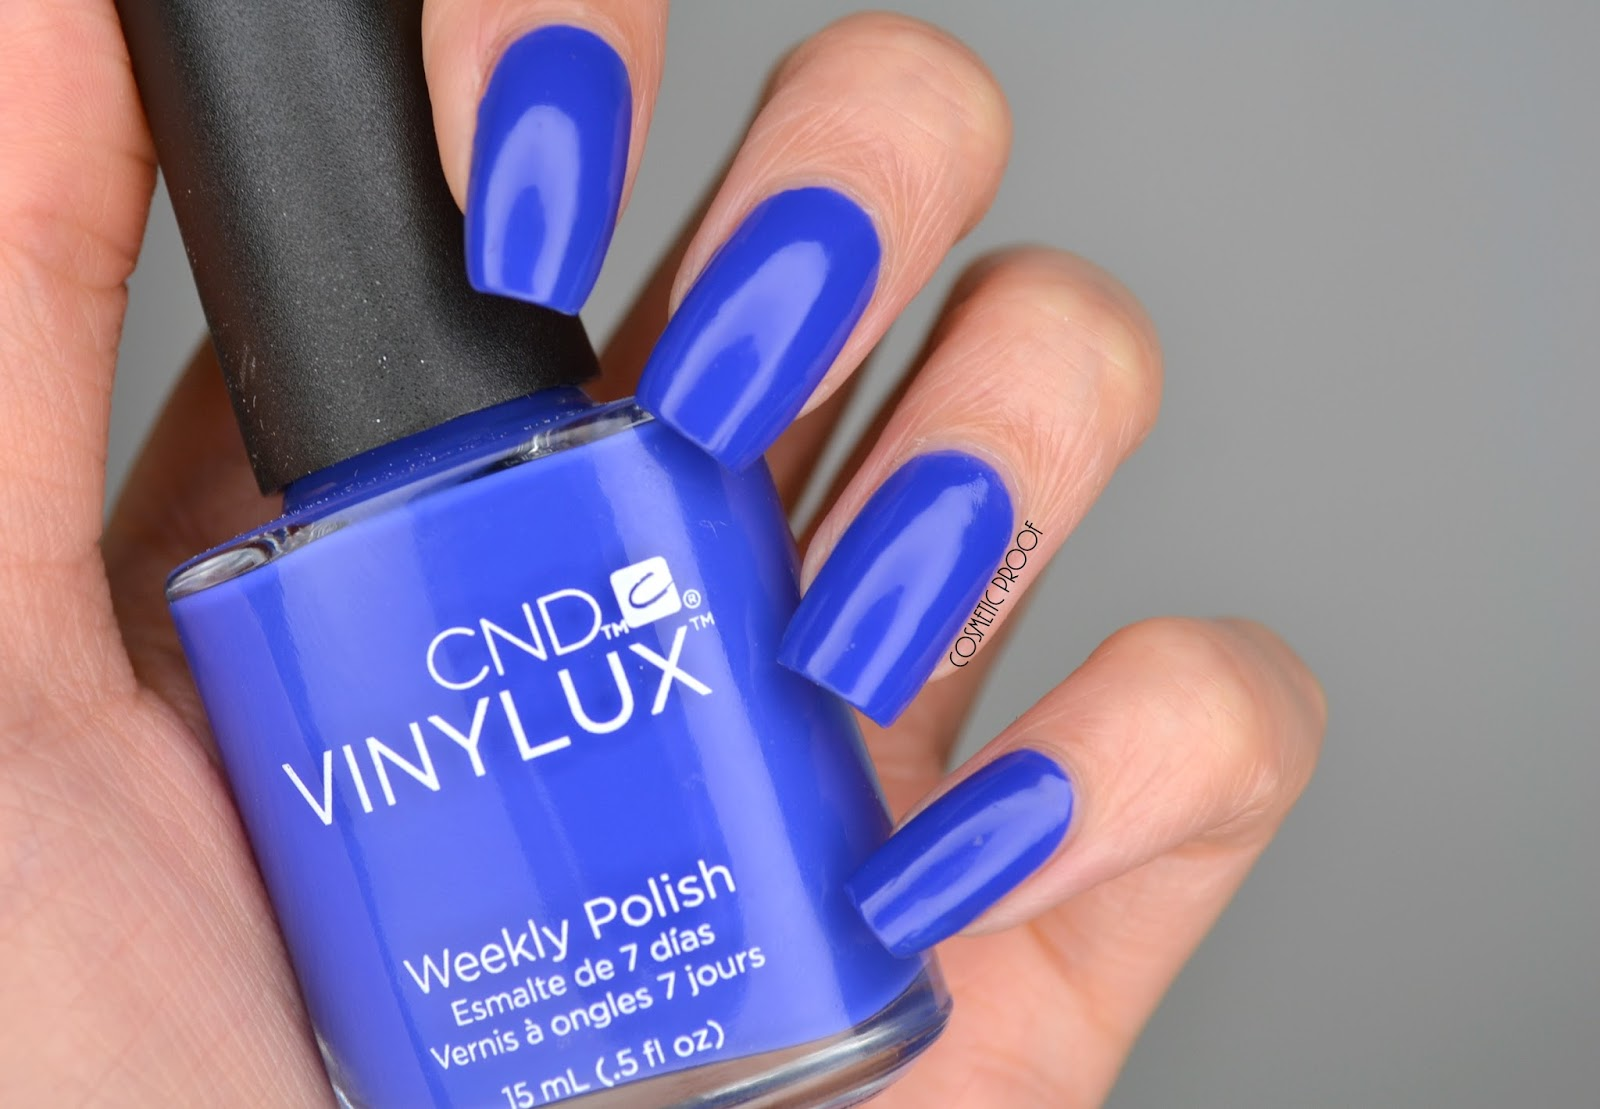 Nails cnd vinylux blue eyeshadow swatch and swirly yellow nail cnd vinylux blue eyeshadow swatch review prinsesfo Image collections